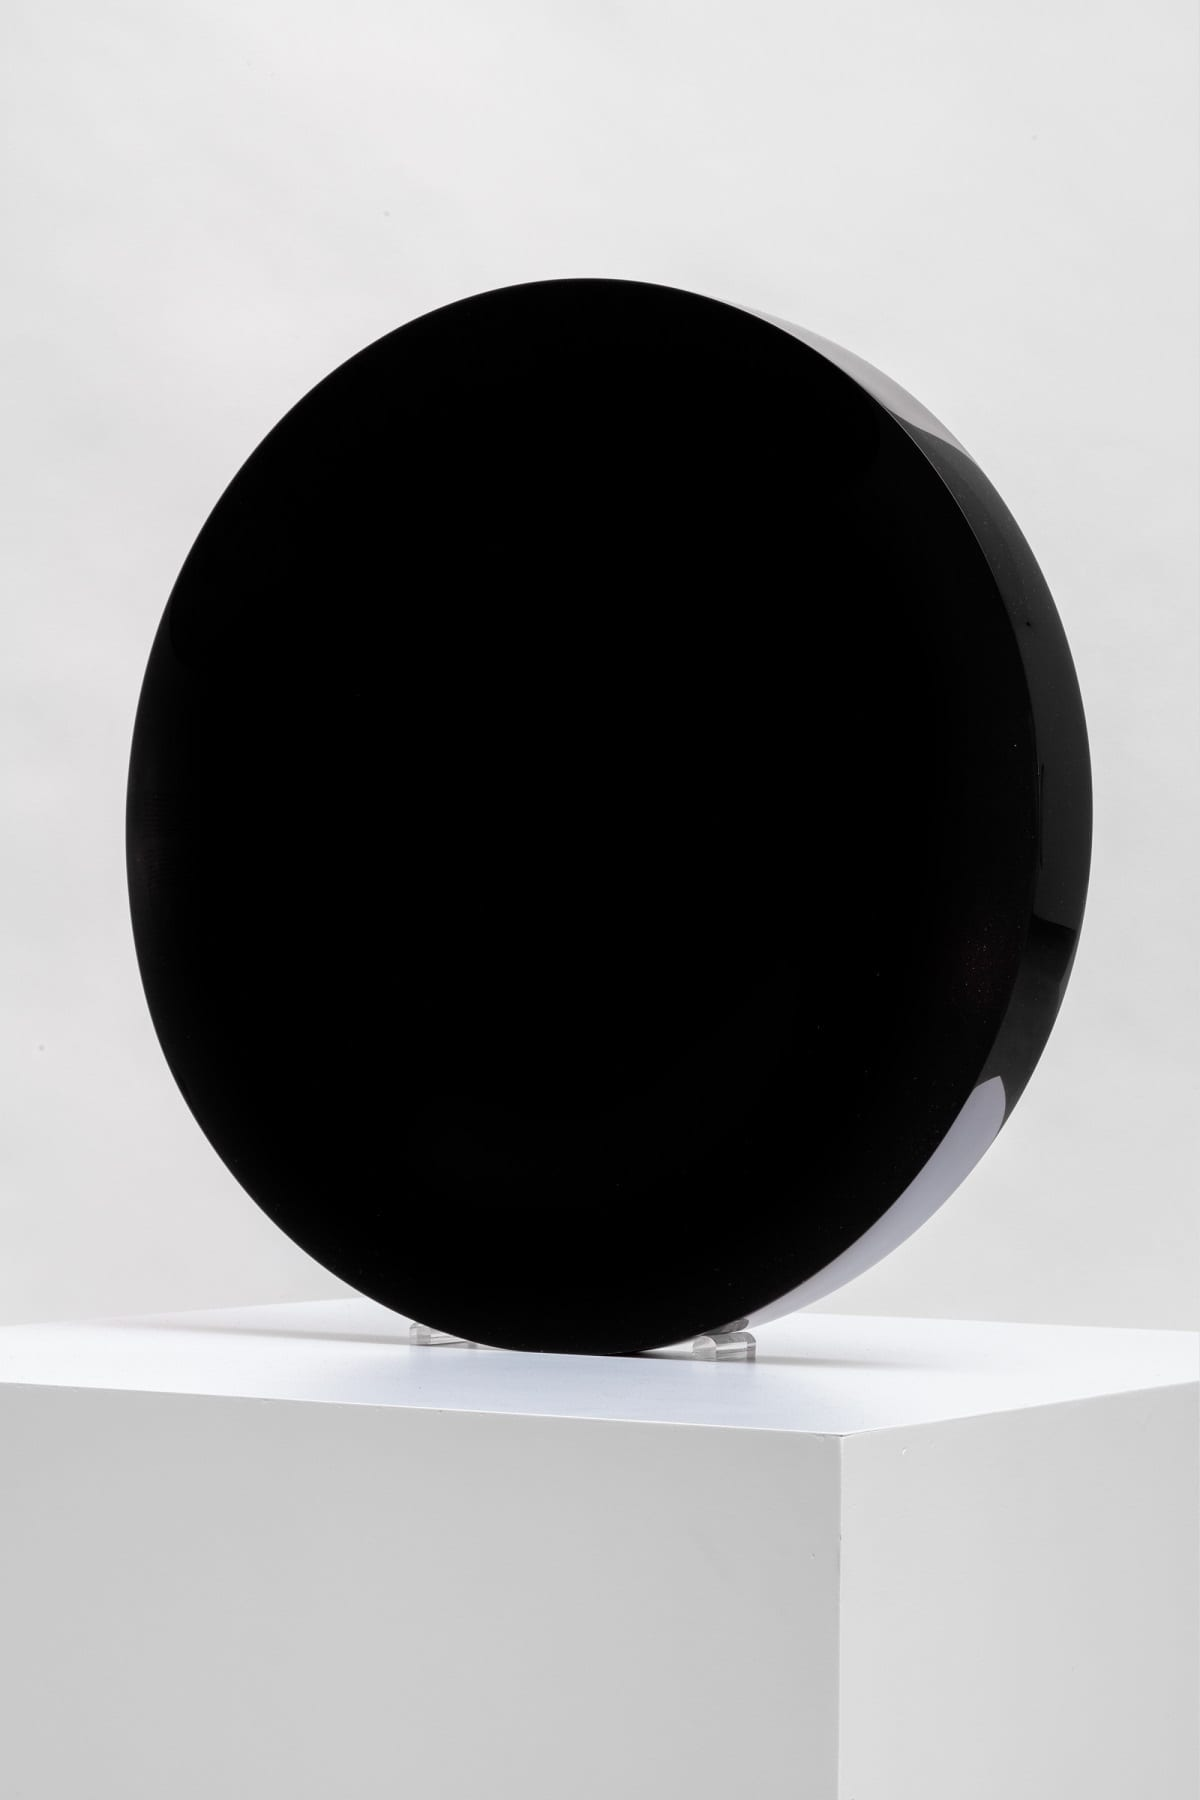 A round, cylindrical cast-polyester sculpture by Fred Eversley. It is dark black, with no details detectable through the rich color.